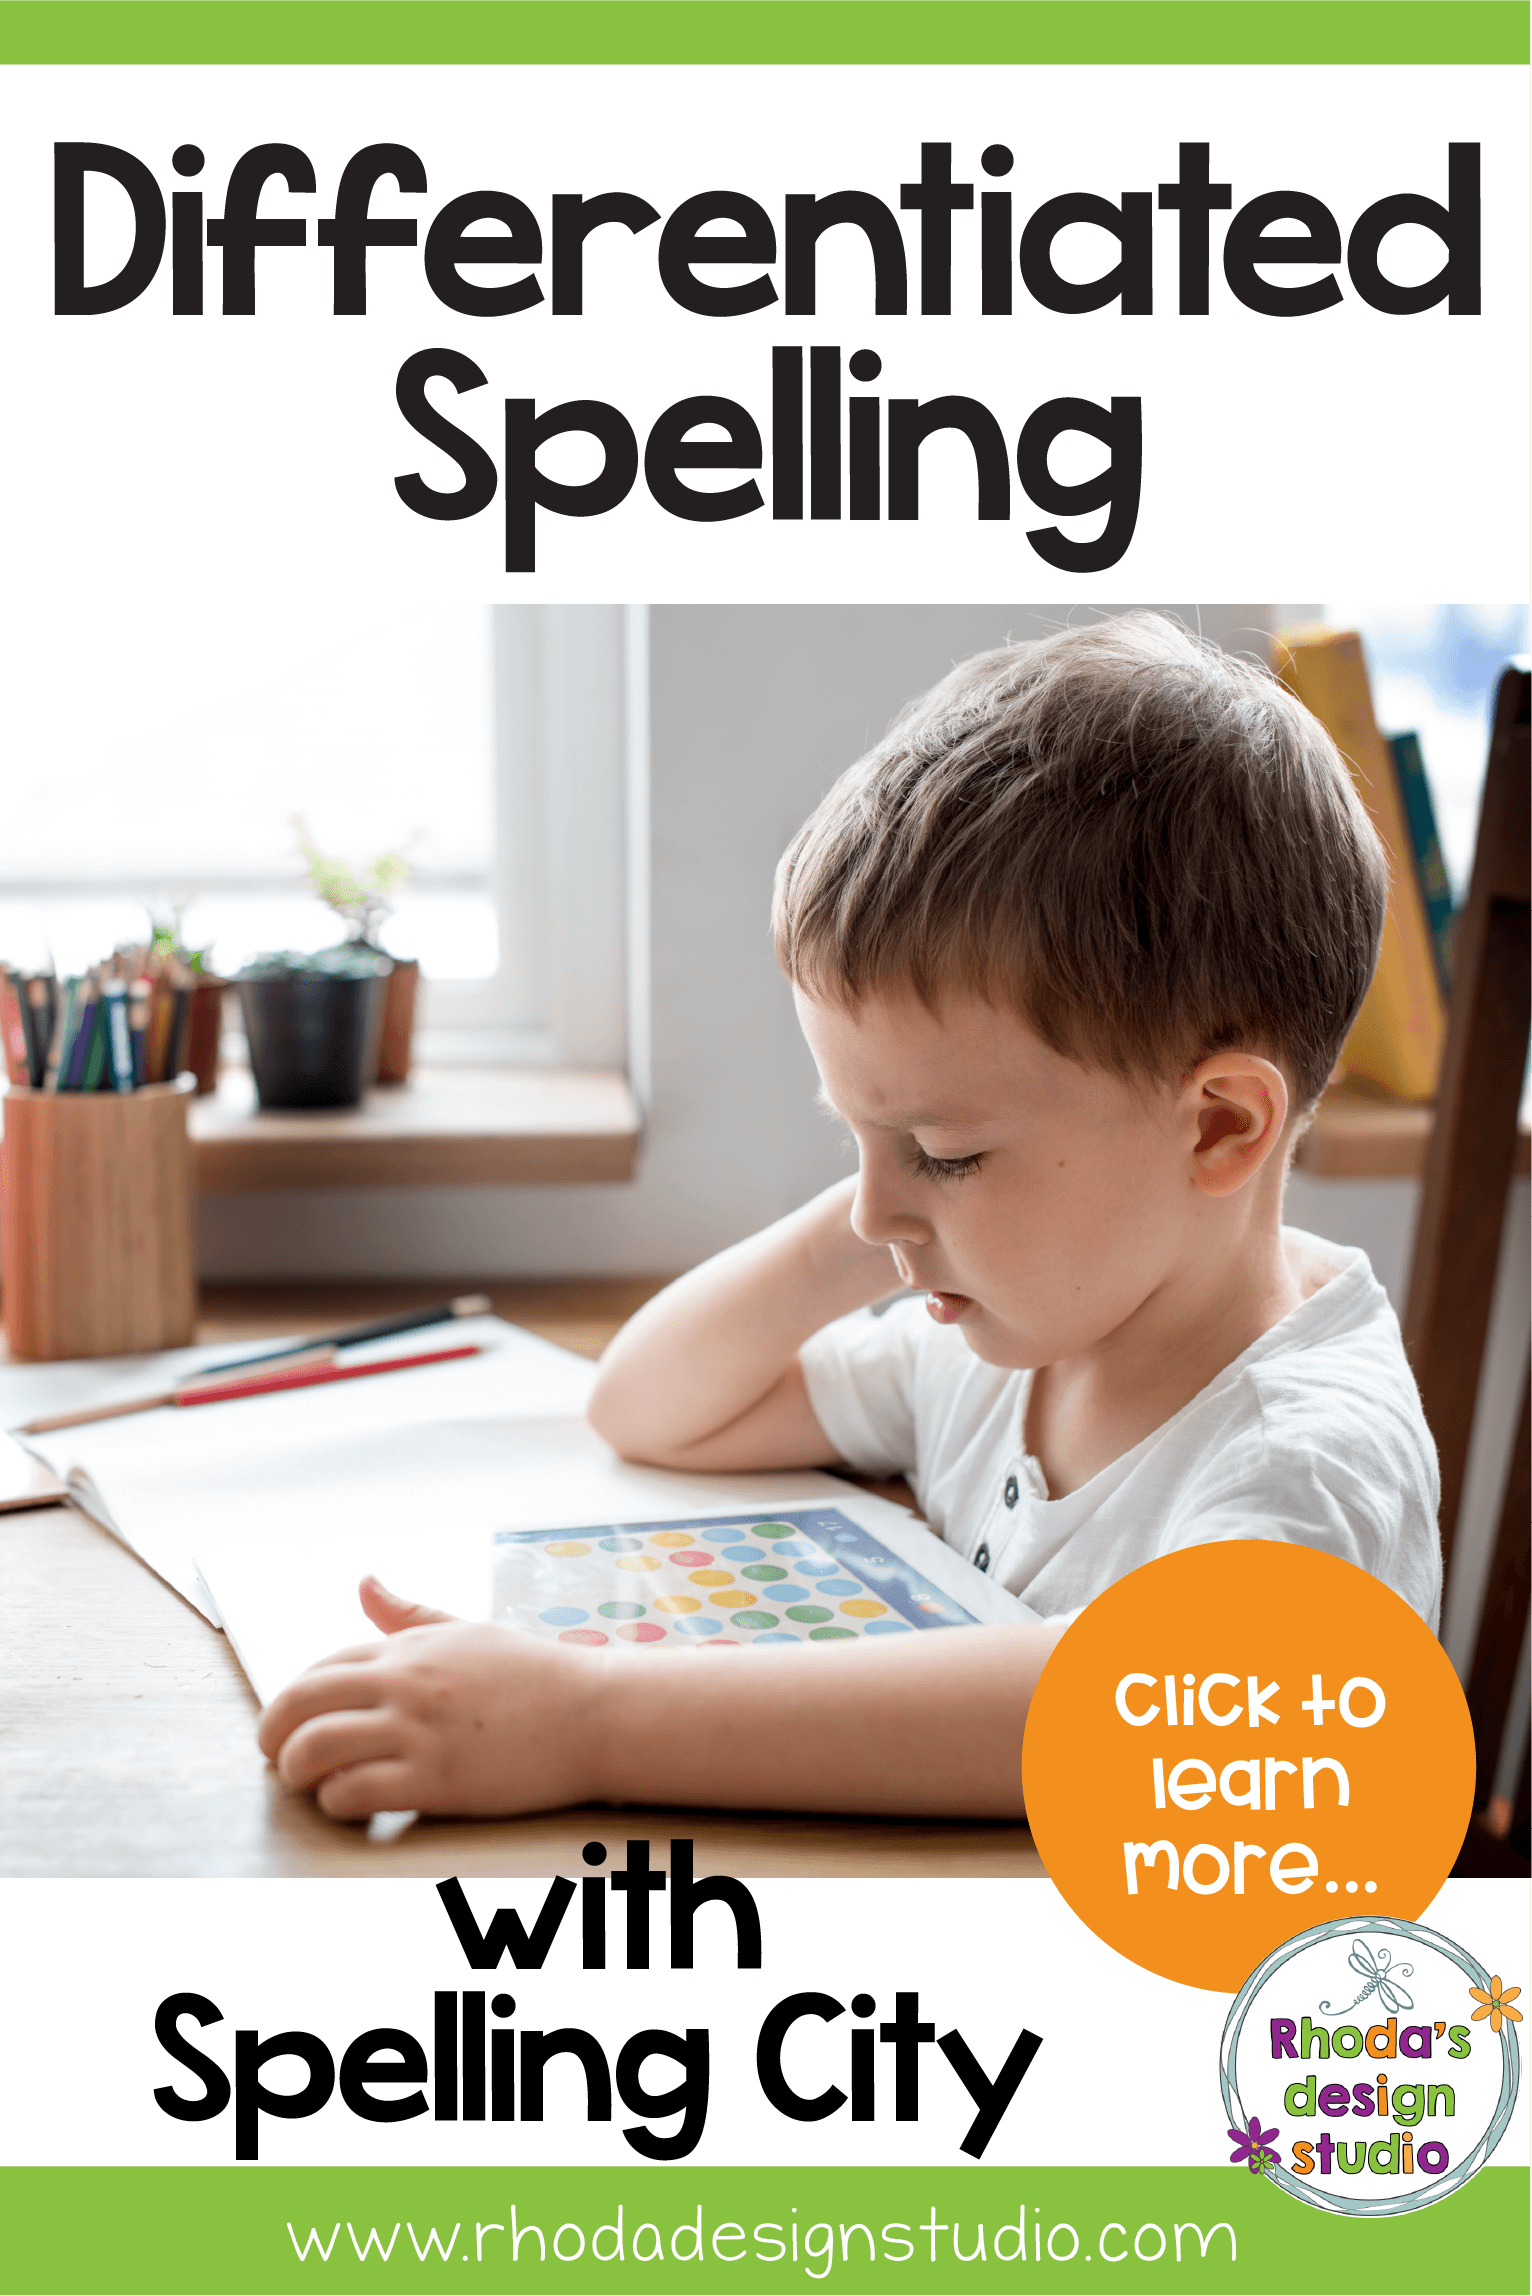 Use Spelling City to help differentiate your spelling levels. Strategies to help students spell by providing activities and games that are fun and rigorous. Spelling lists are provided for elementary and upper elementary grades. #rhodadesignstudio